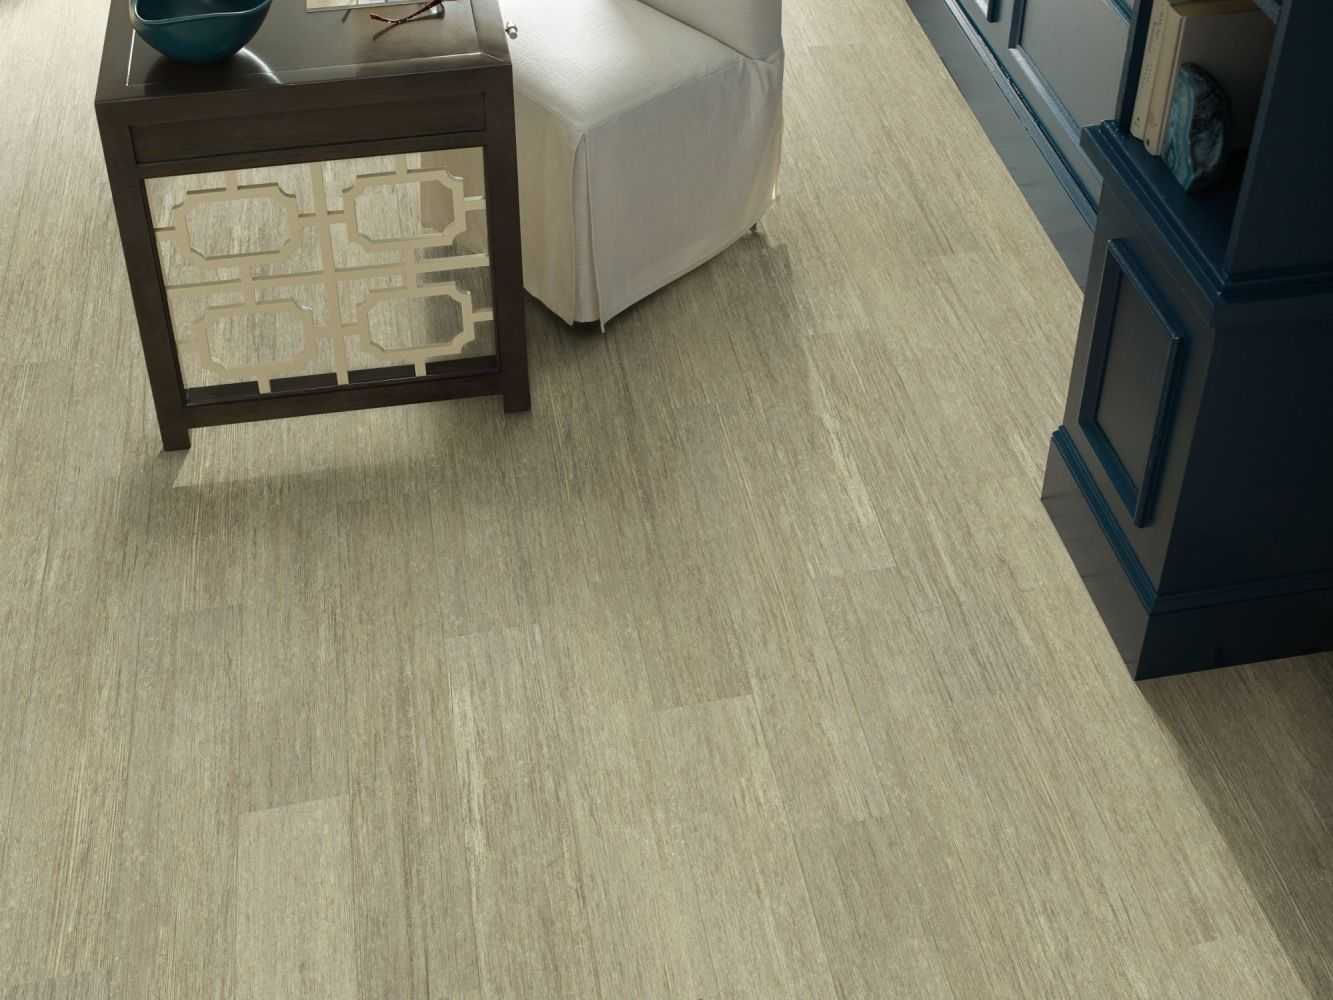 Shaw Floors 5th And Main Symbiotic 20 Flaxen 00216_5M303